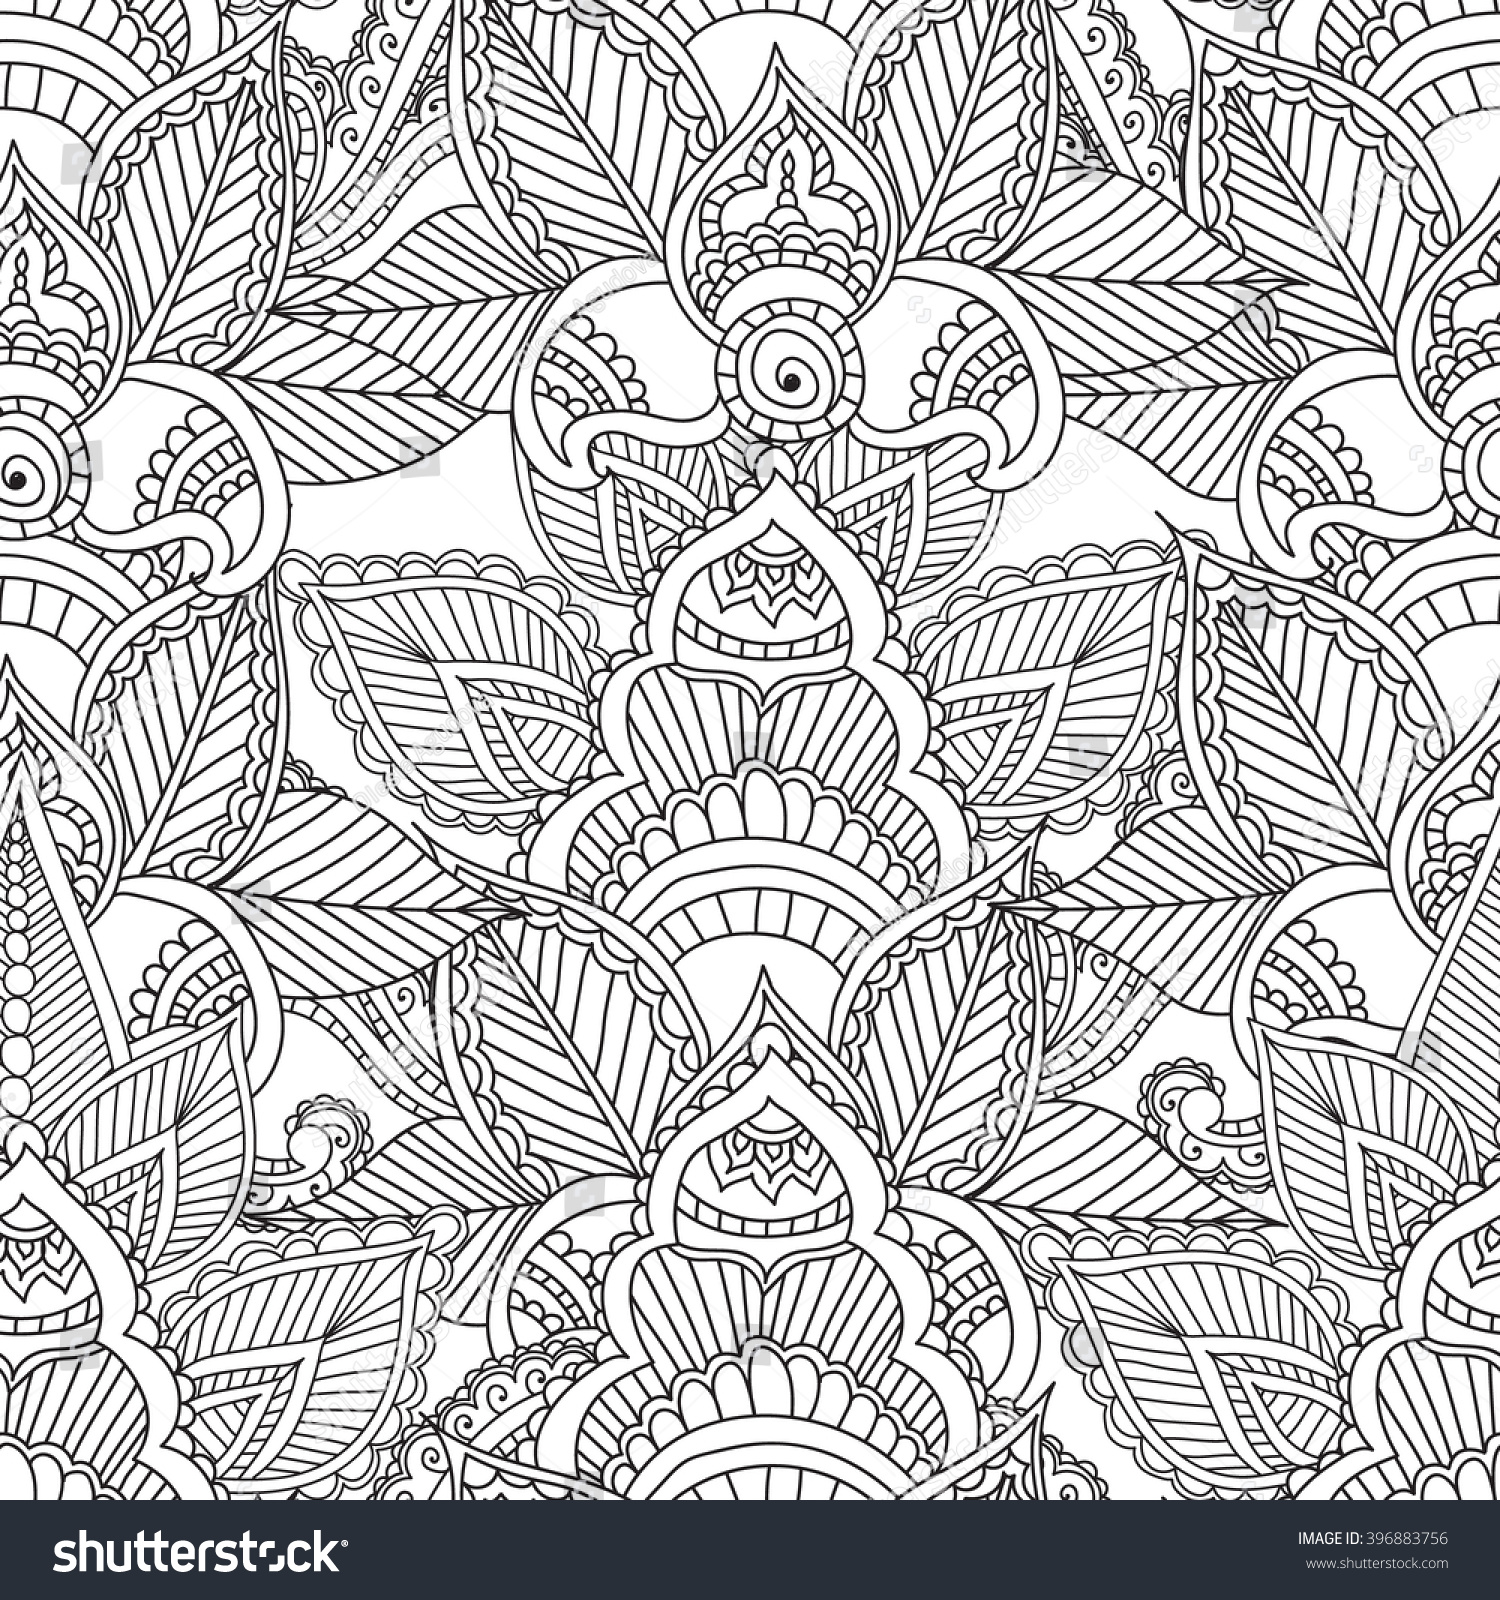 Coloring Pages For AdultsSeamless PatternHenna Mehendi Doodles Abstract Floral Paisley Design Elements